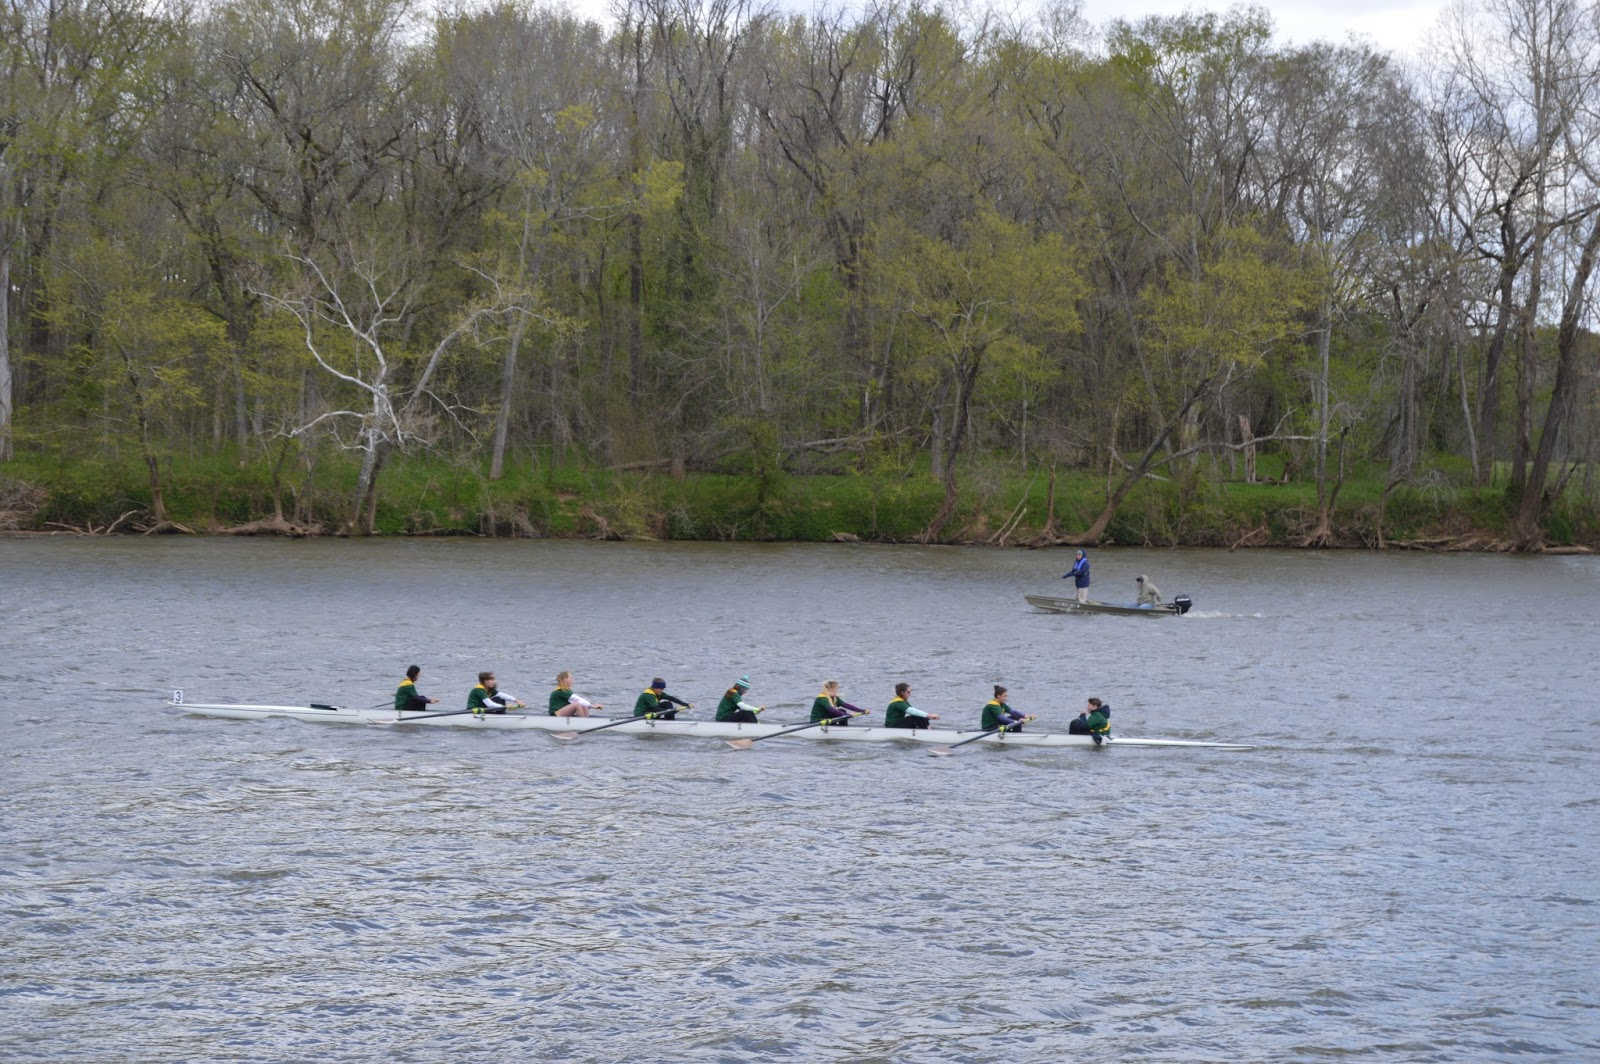 on saturday april 9th we made the trip to james river high school west of richmond for our second regatta of the season again we were met with breezy